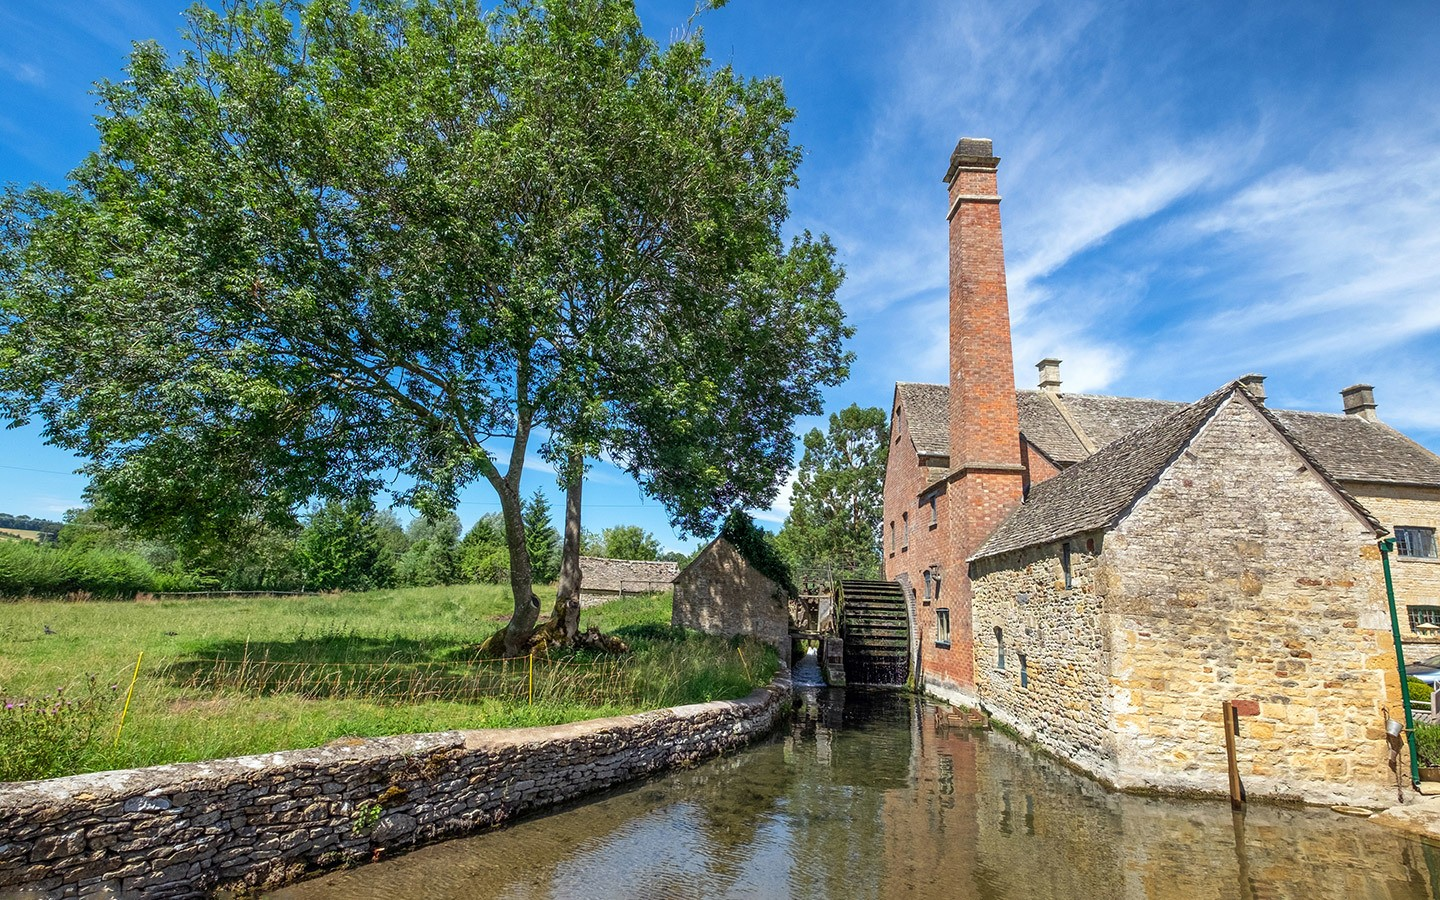 The Old Mill in Lower Slaughter in the Cotswolds